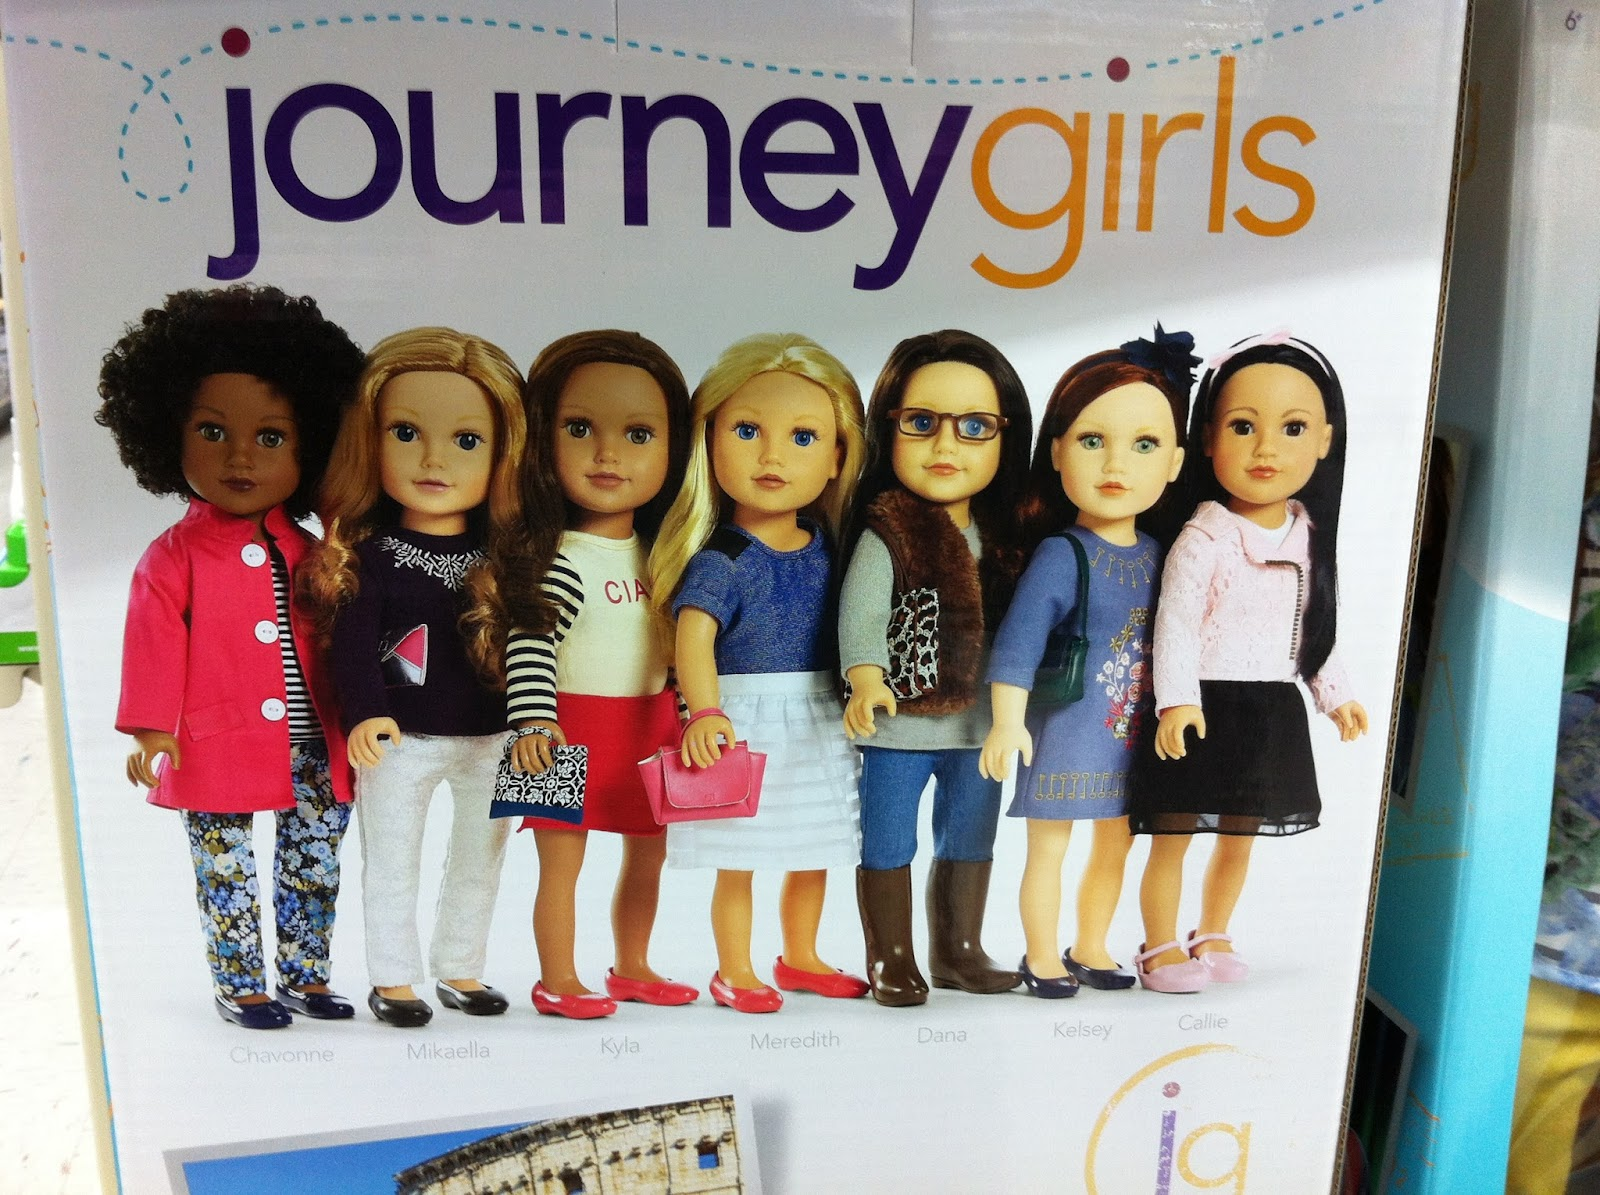 Toys R Us Journey Girls : A little doll will do it ..: new outfits for journey girls